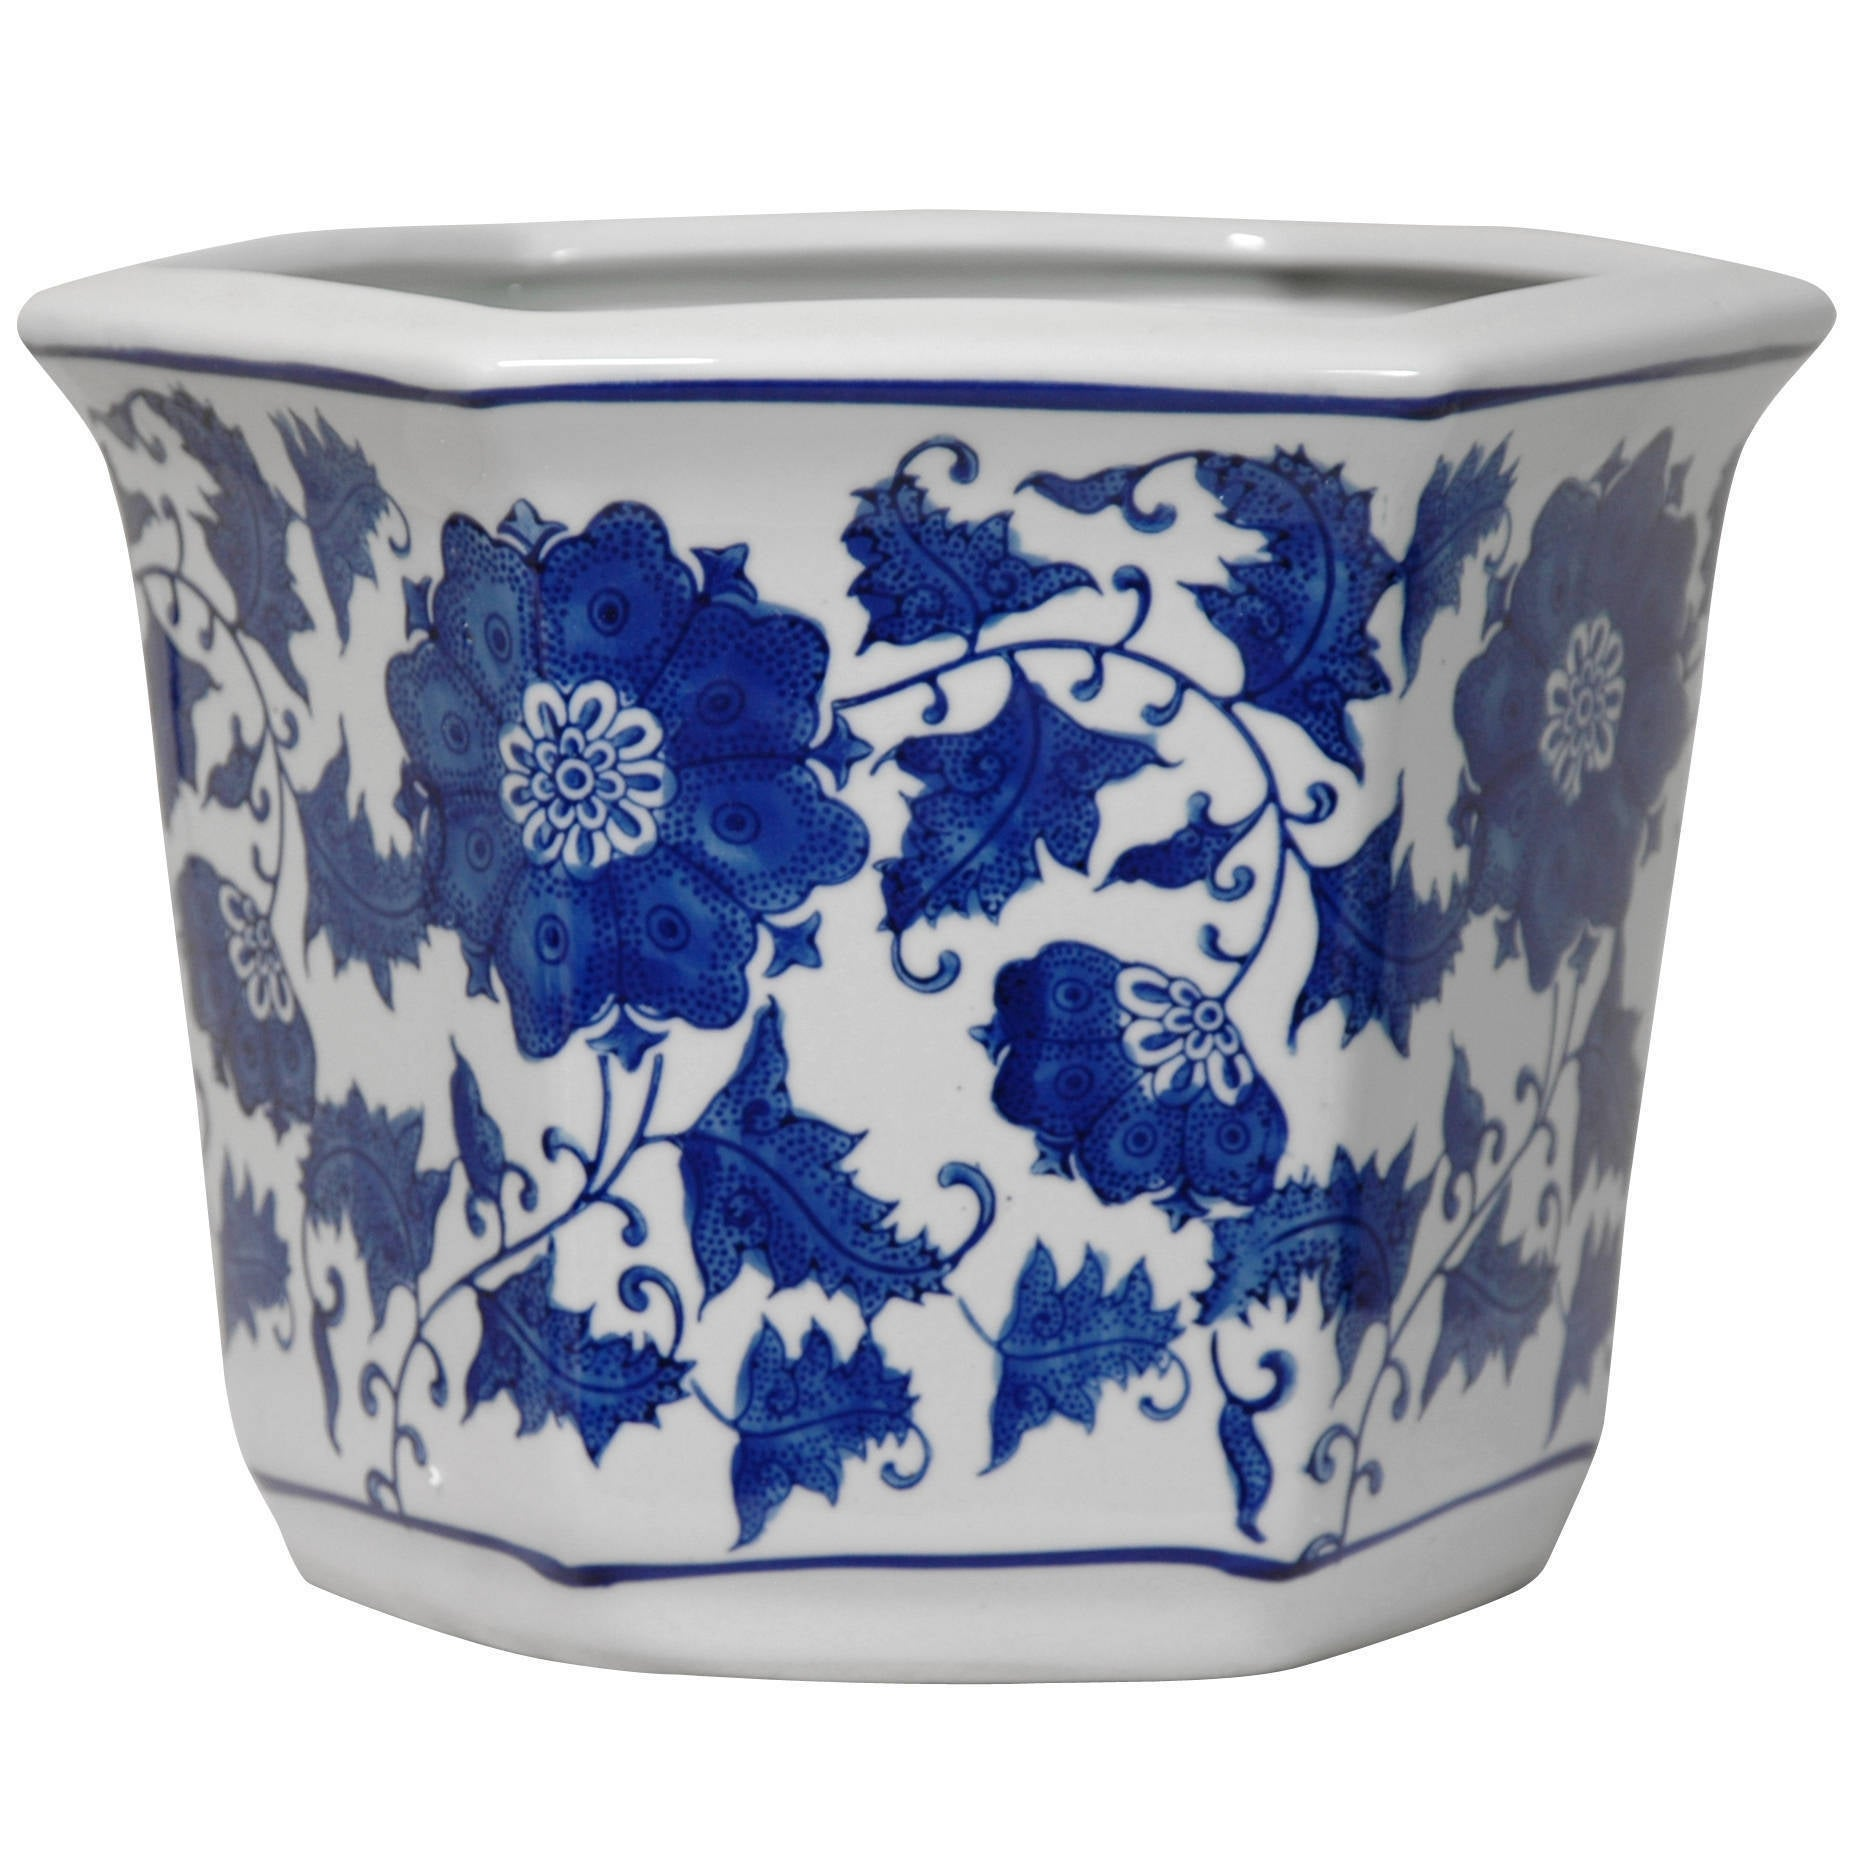 Handmade Porcelain Blue And White Flower Pot Planter China Free Shipping Today 5675223